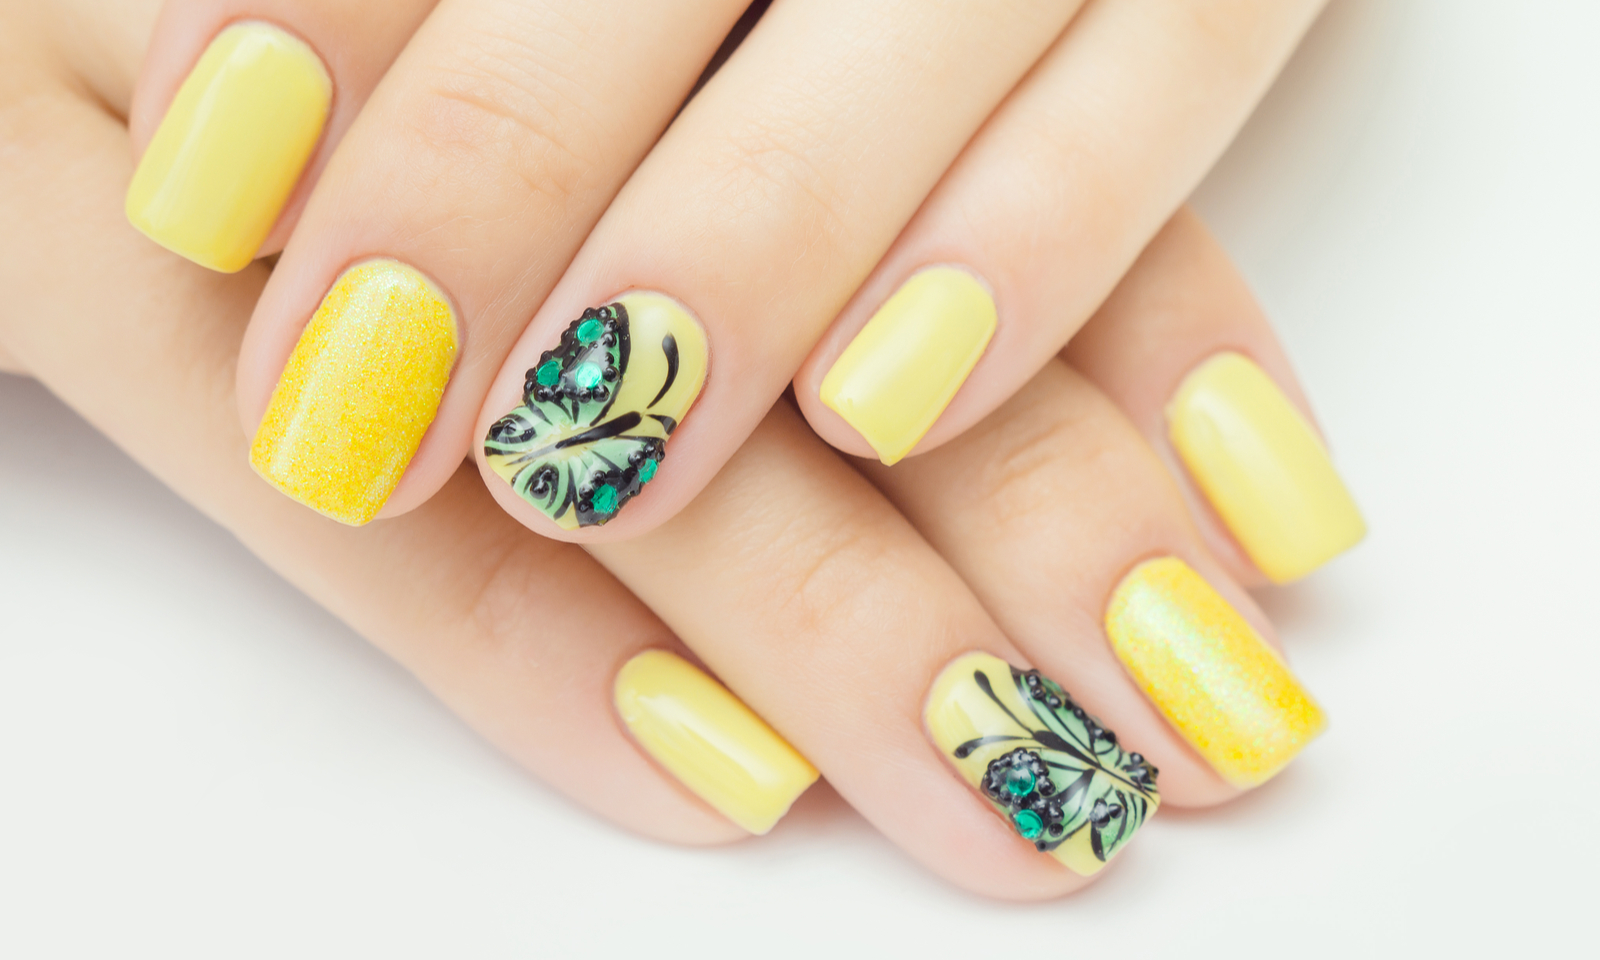 10 Nail Art Ideas Perfect for The Summer